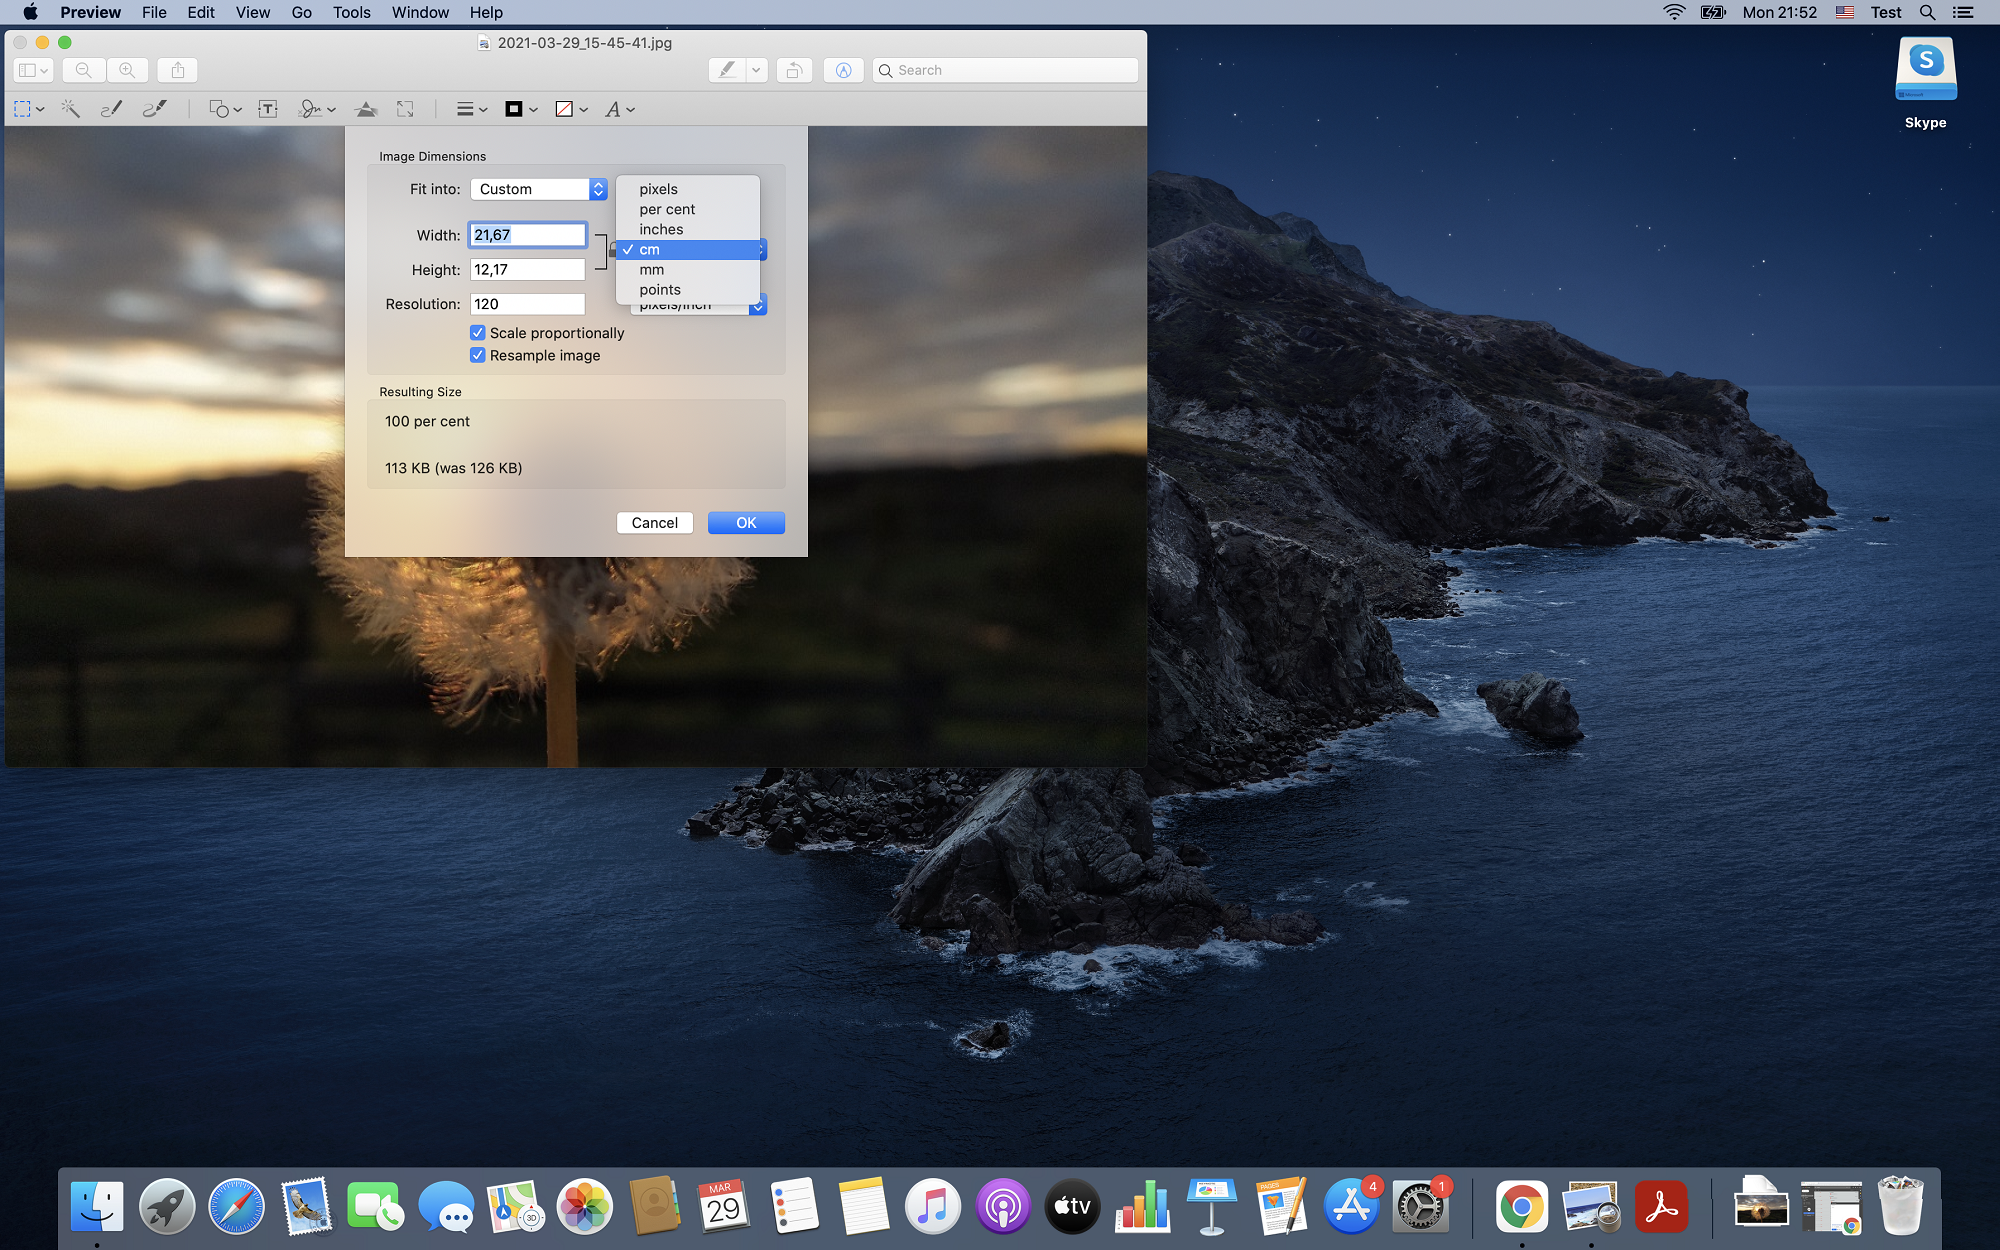 Convert low resolution image to high resolution on Mac